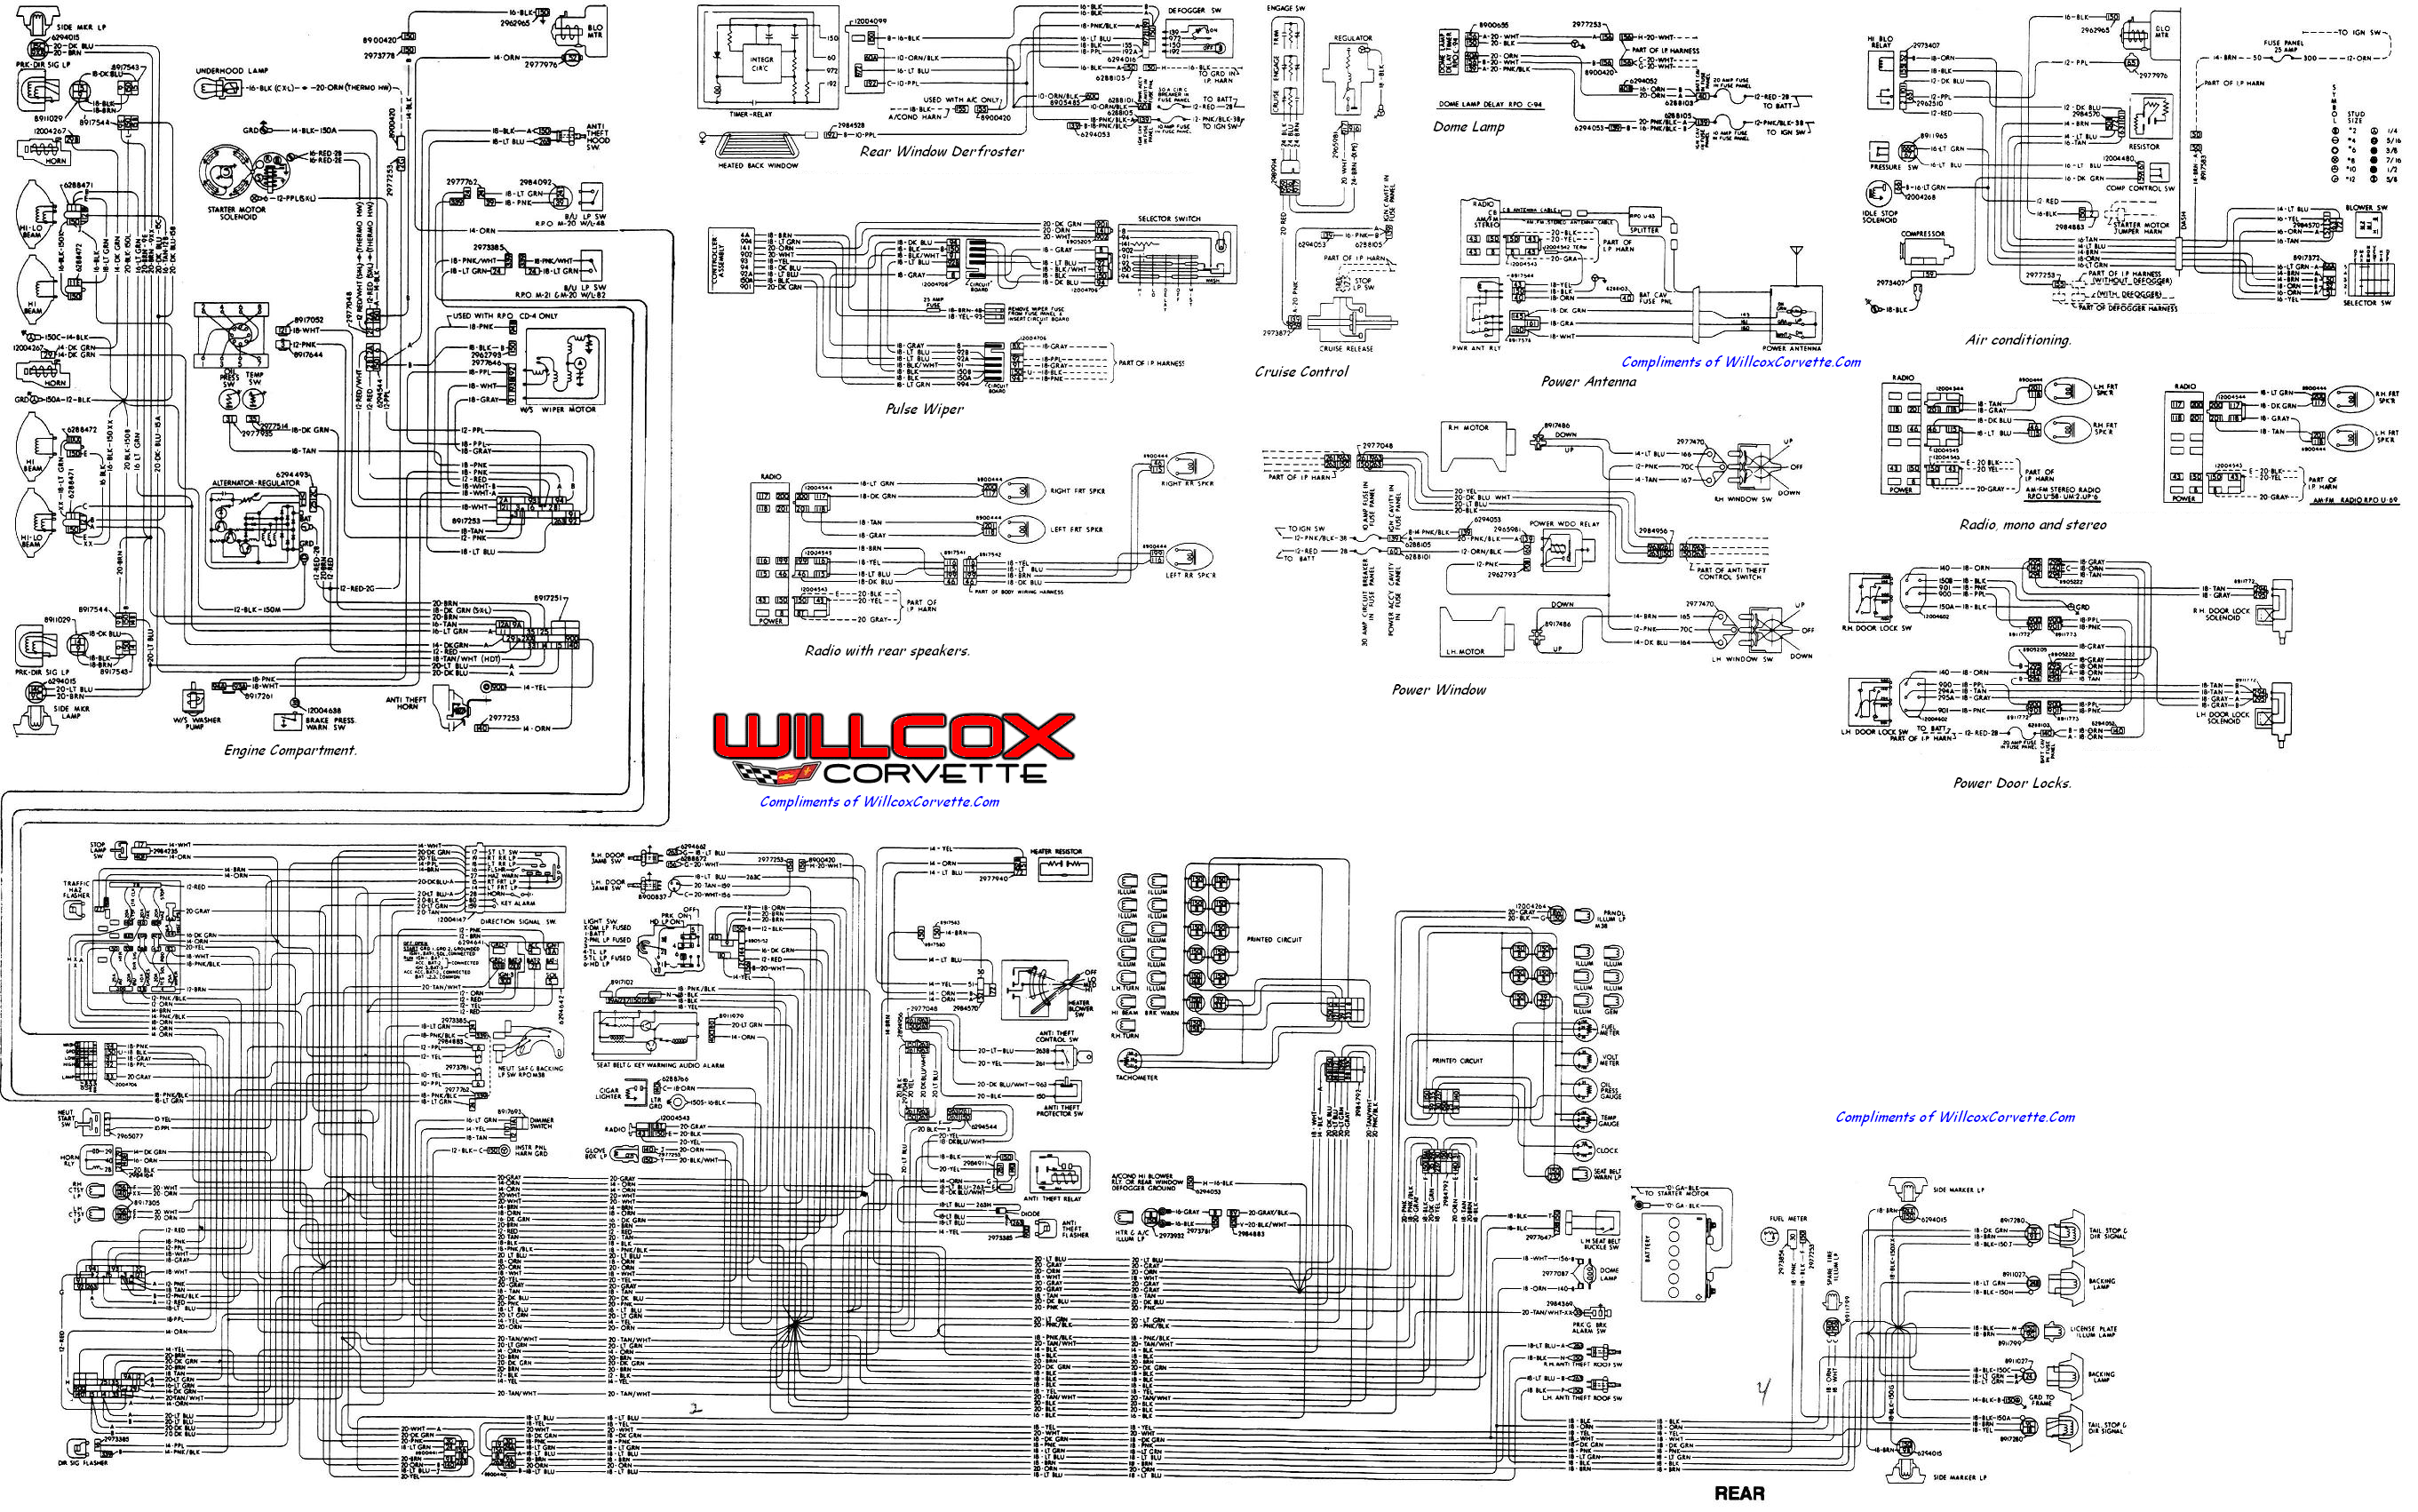 1978 280z Wiring Diagram - Wiring Diagram G11  Datsun Zx Wiring Diagram on 1978 280z wiring diagram, 1971 240z wiring diagram, 1975 280z wiring diagram, 1977 280z wiring diagram, 1976 280z wiring diagram,